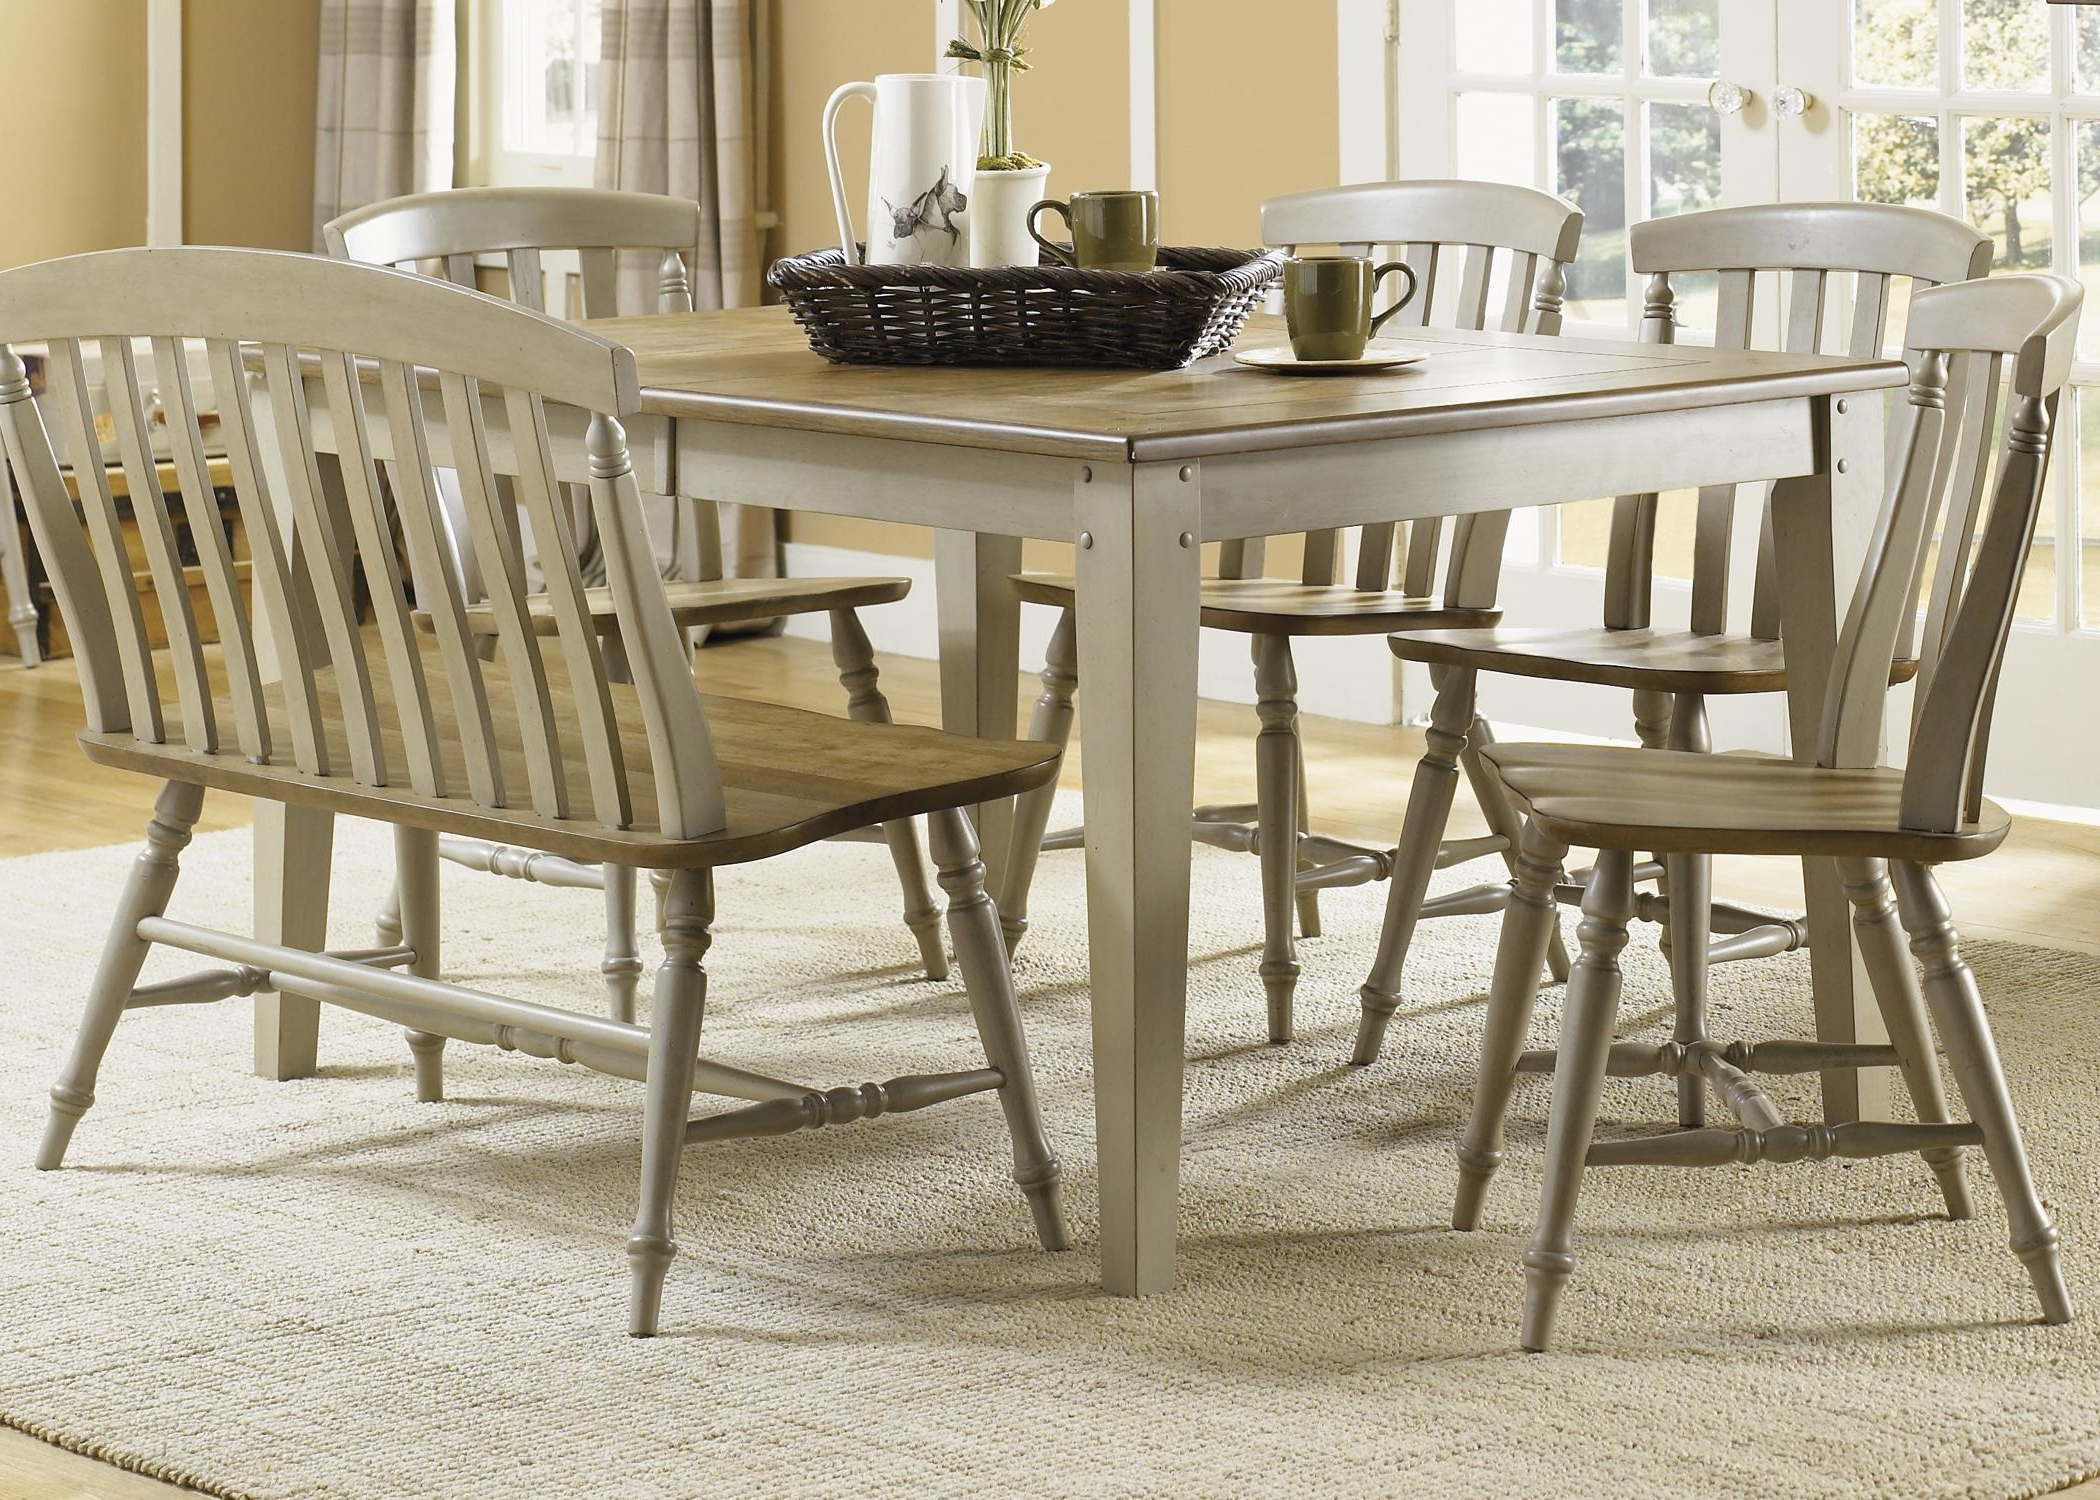 Most Up To Date Dinning Room. 6 Piece Dining Room Sets – Home Design 2019 Regarding Patterson 6 Piece Dining Sets (Gallery 12 of 25)